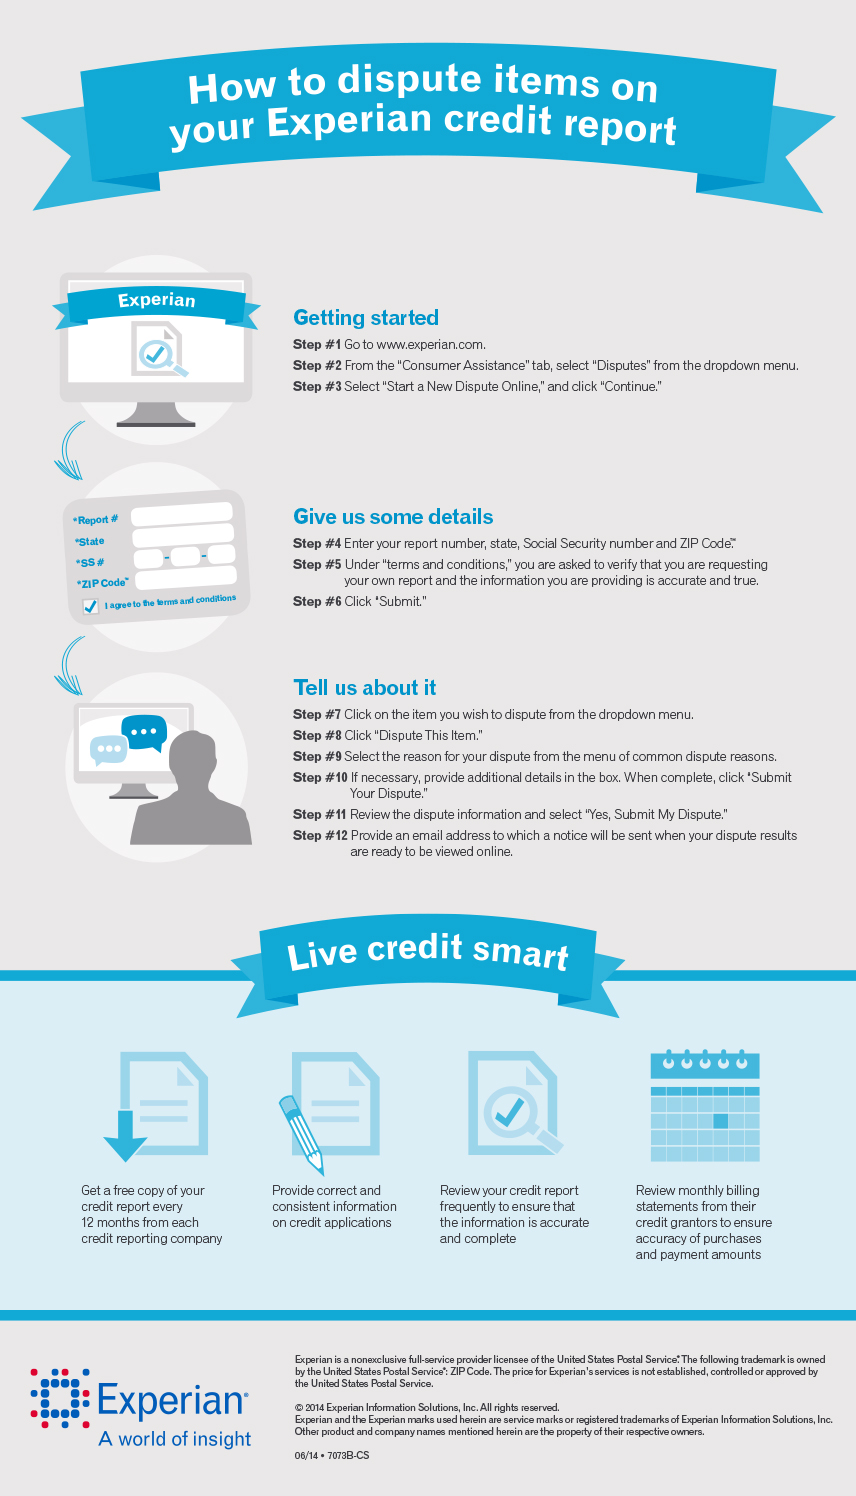 How to dispute items on your Experian credit report [Infographic